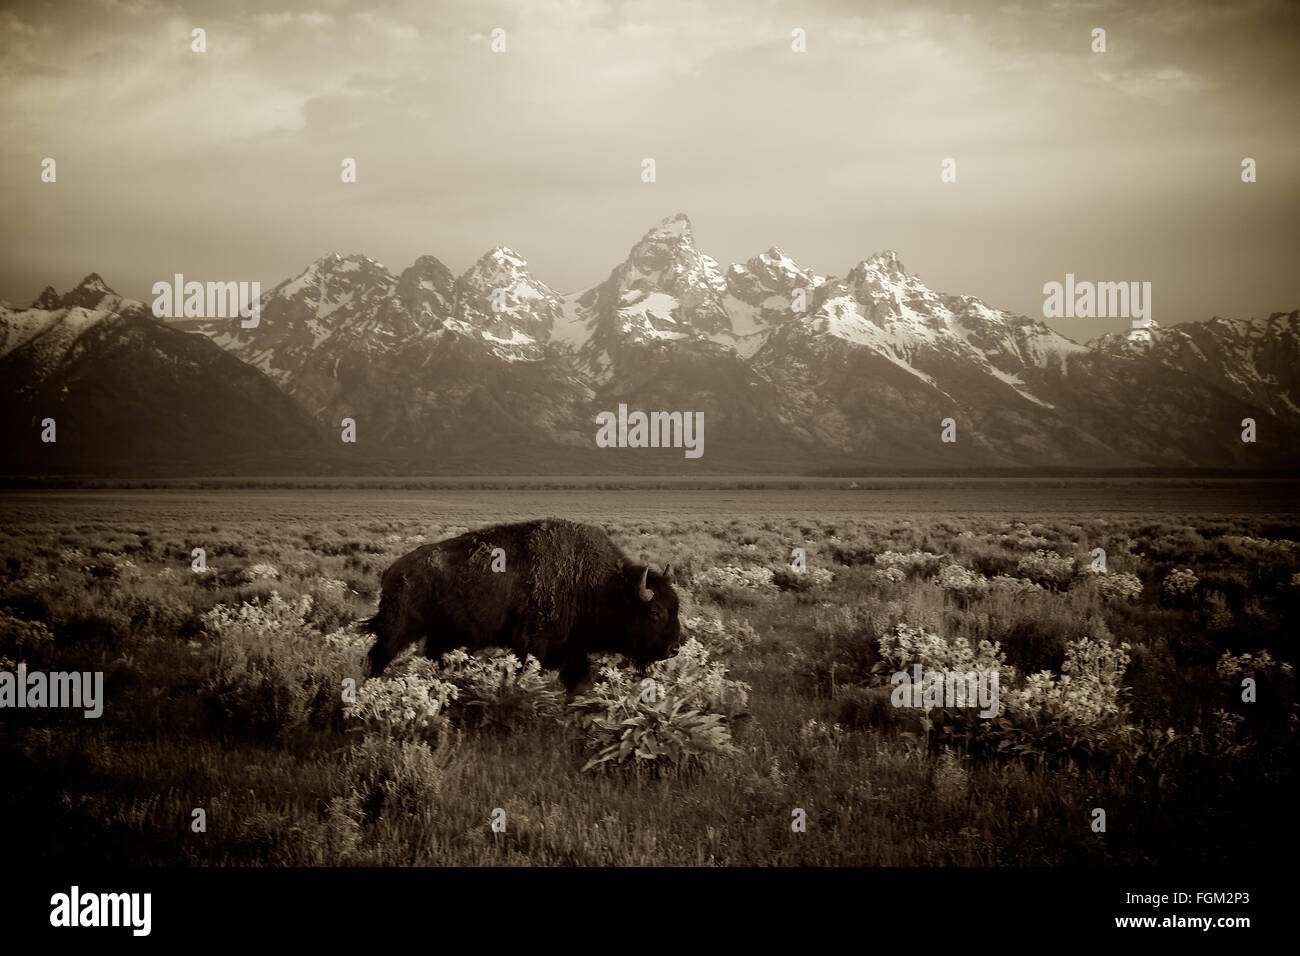 American Bison walking in front of Grand Teton National Park - Stock Image